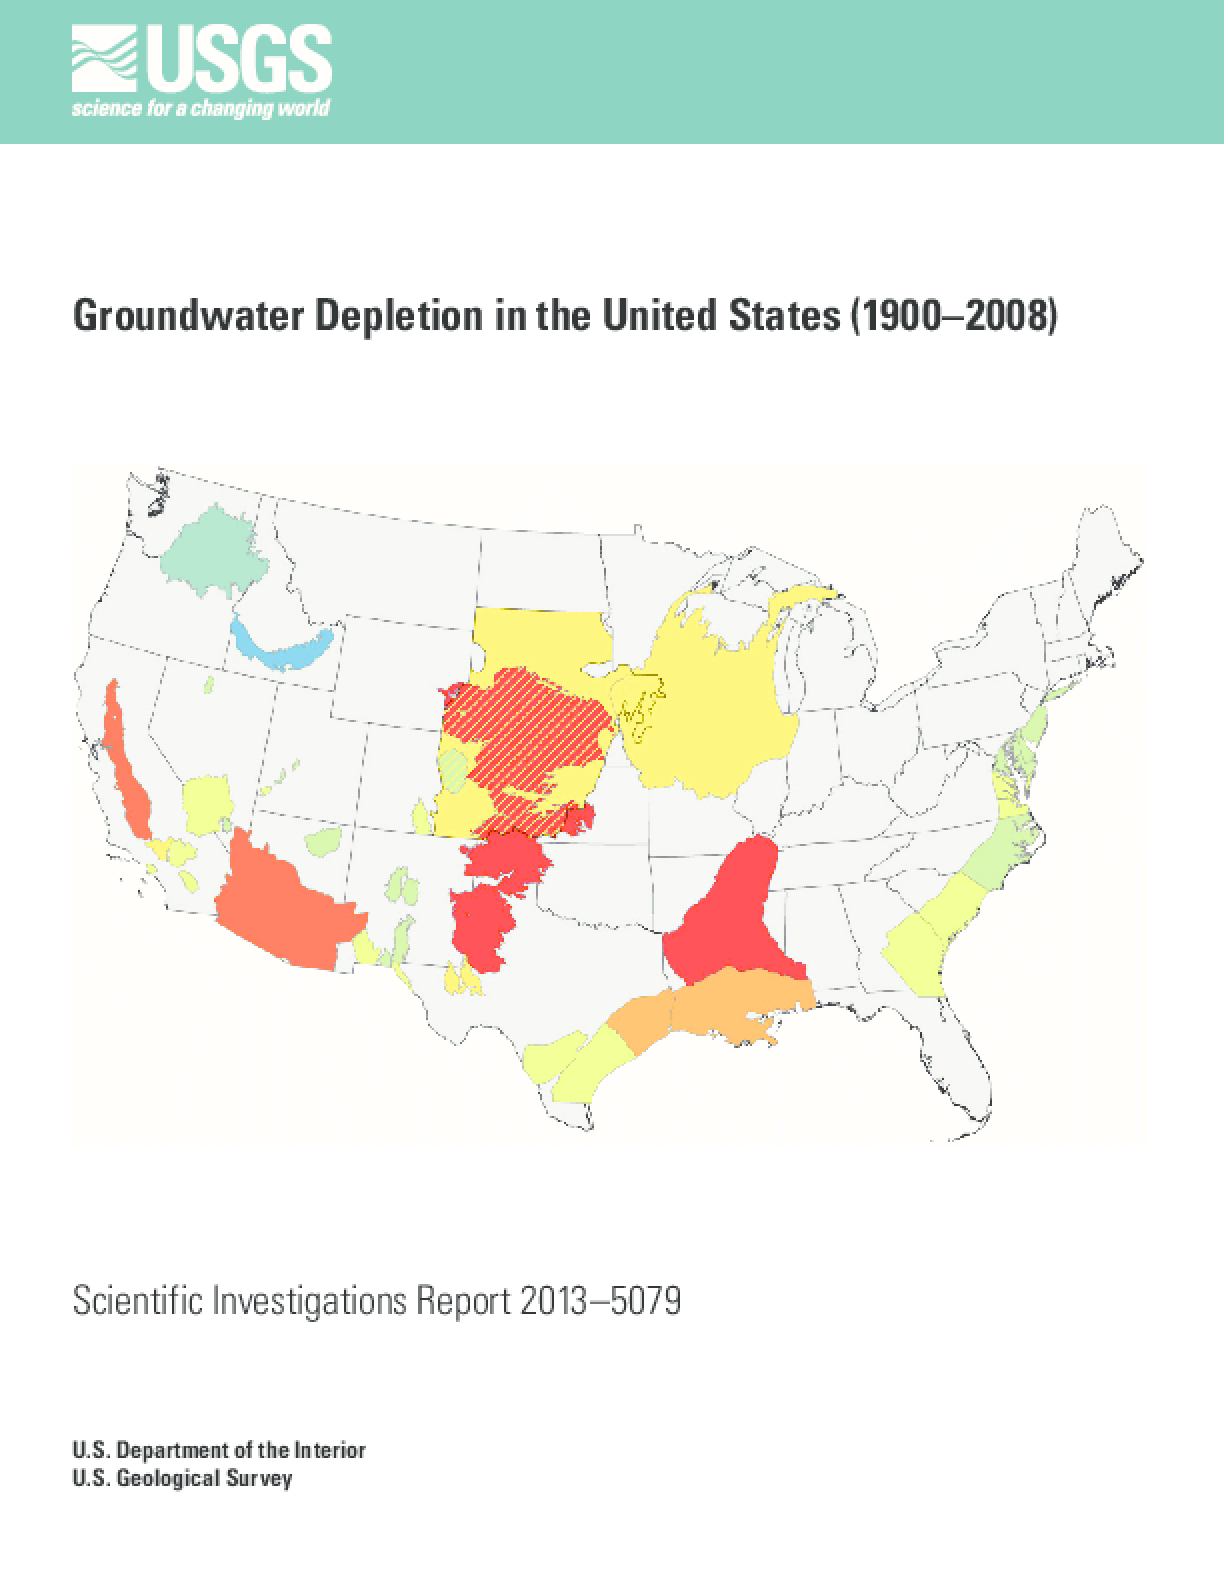 Groundwater Depletion in the United States (1900-2008)